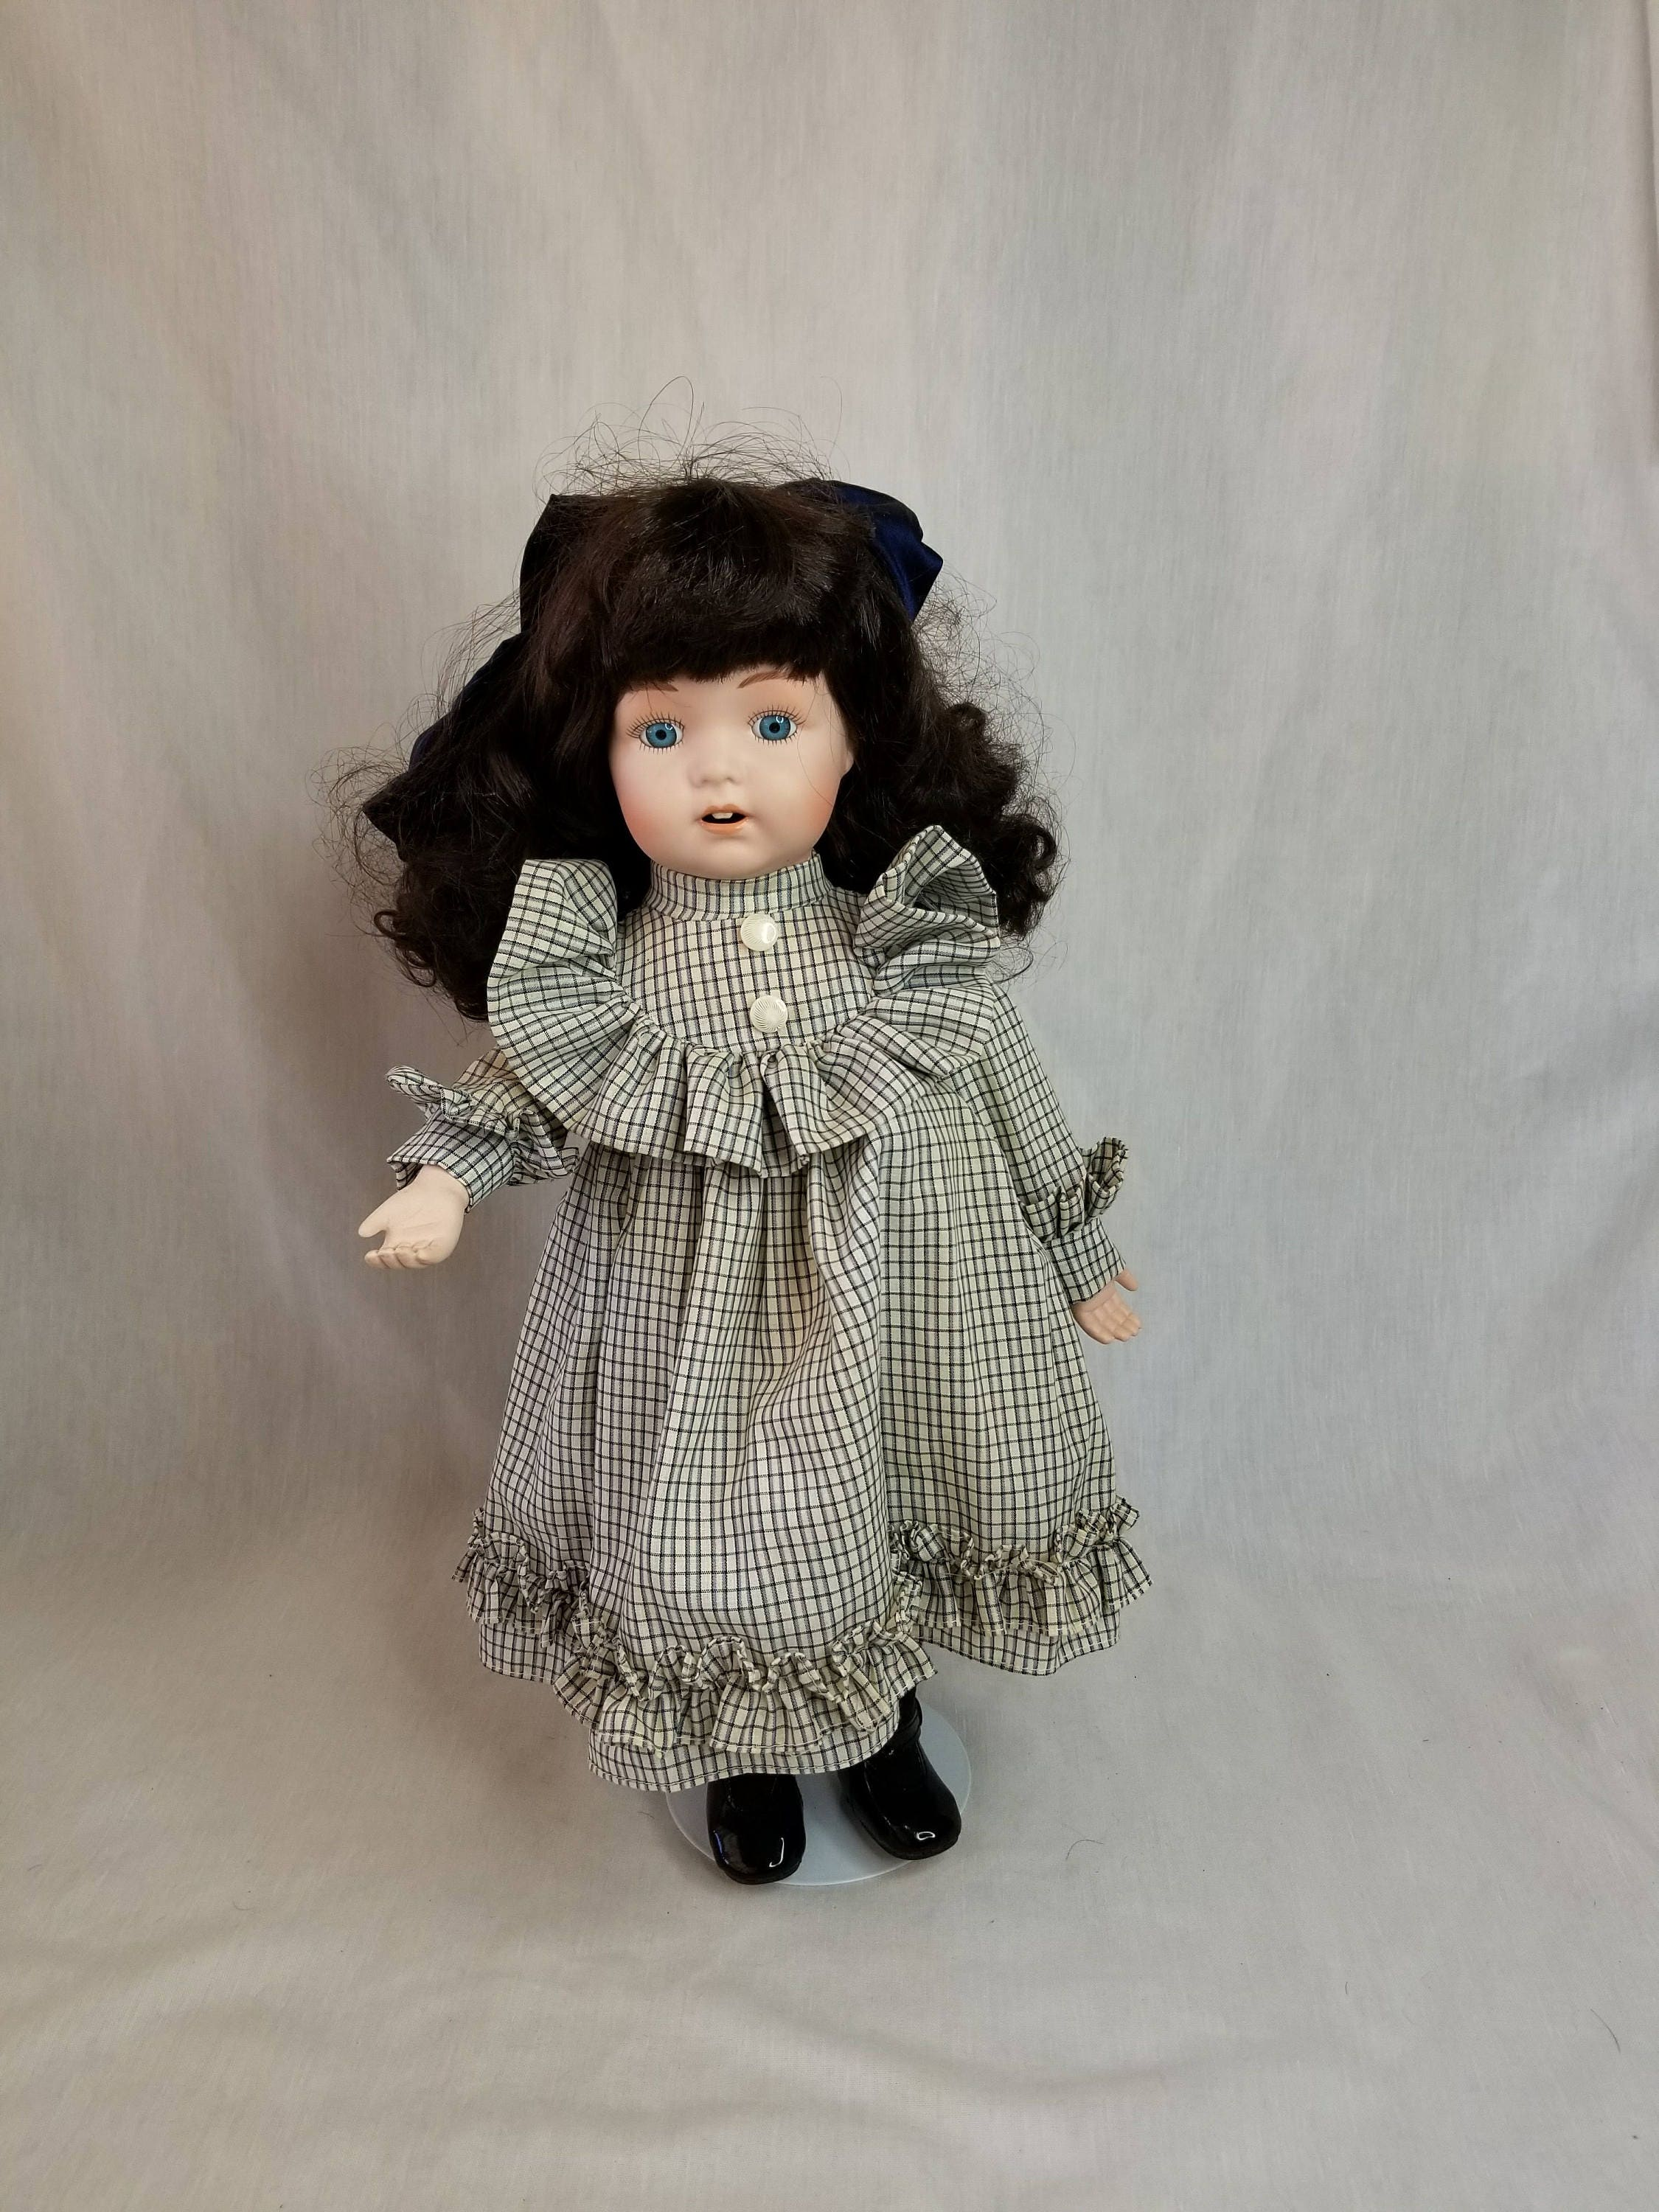 Ettie ~ Haunted Porcelain Doll 20 ~ Paranormal ~ Smart Mouth